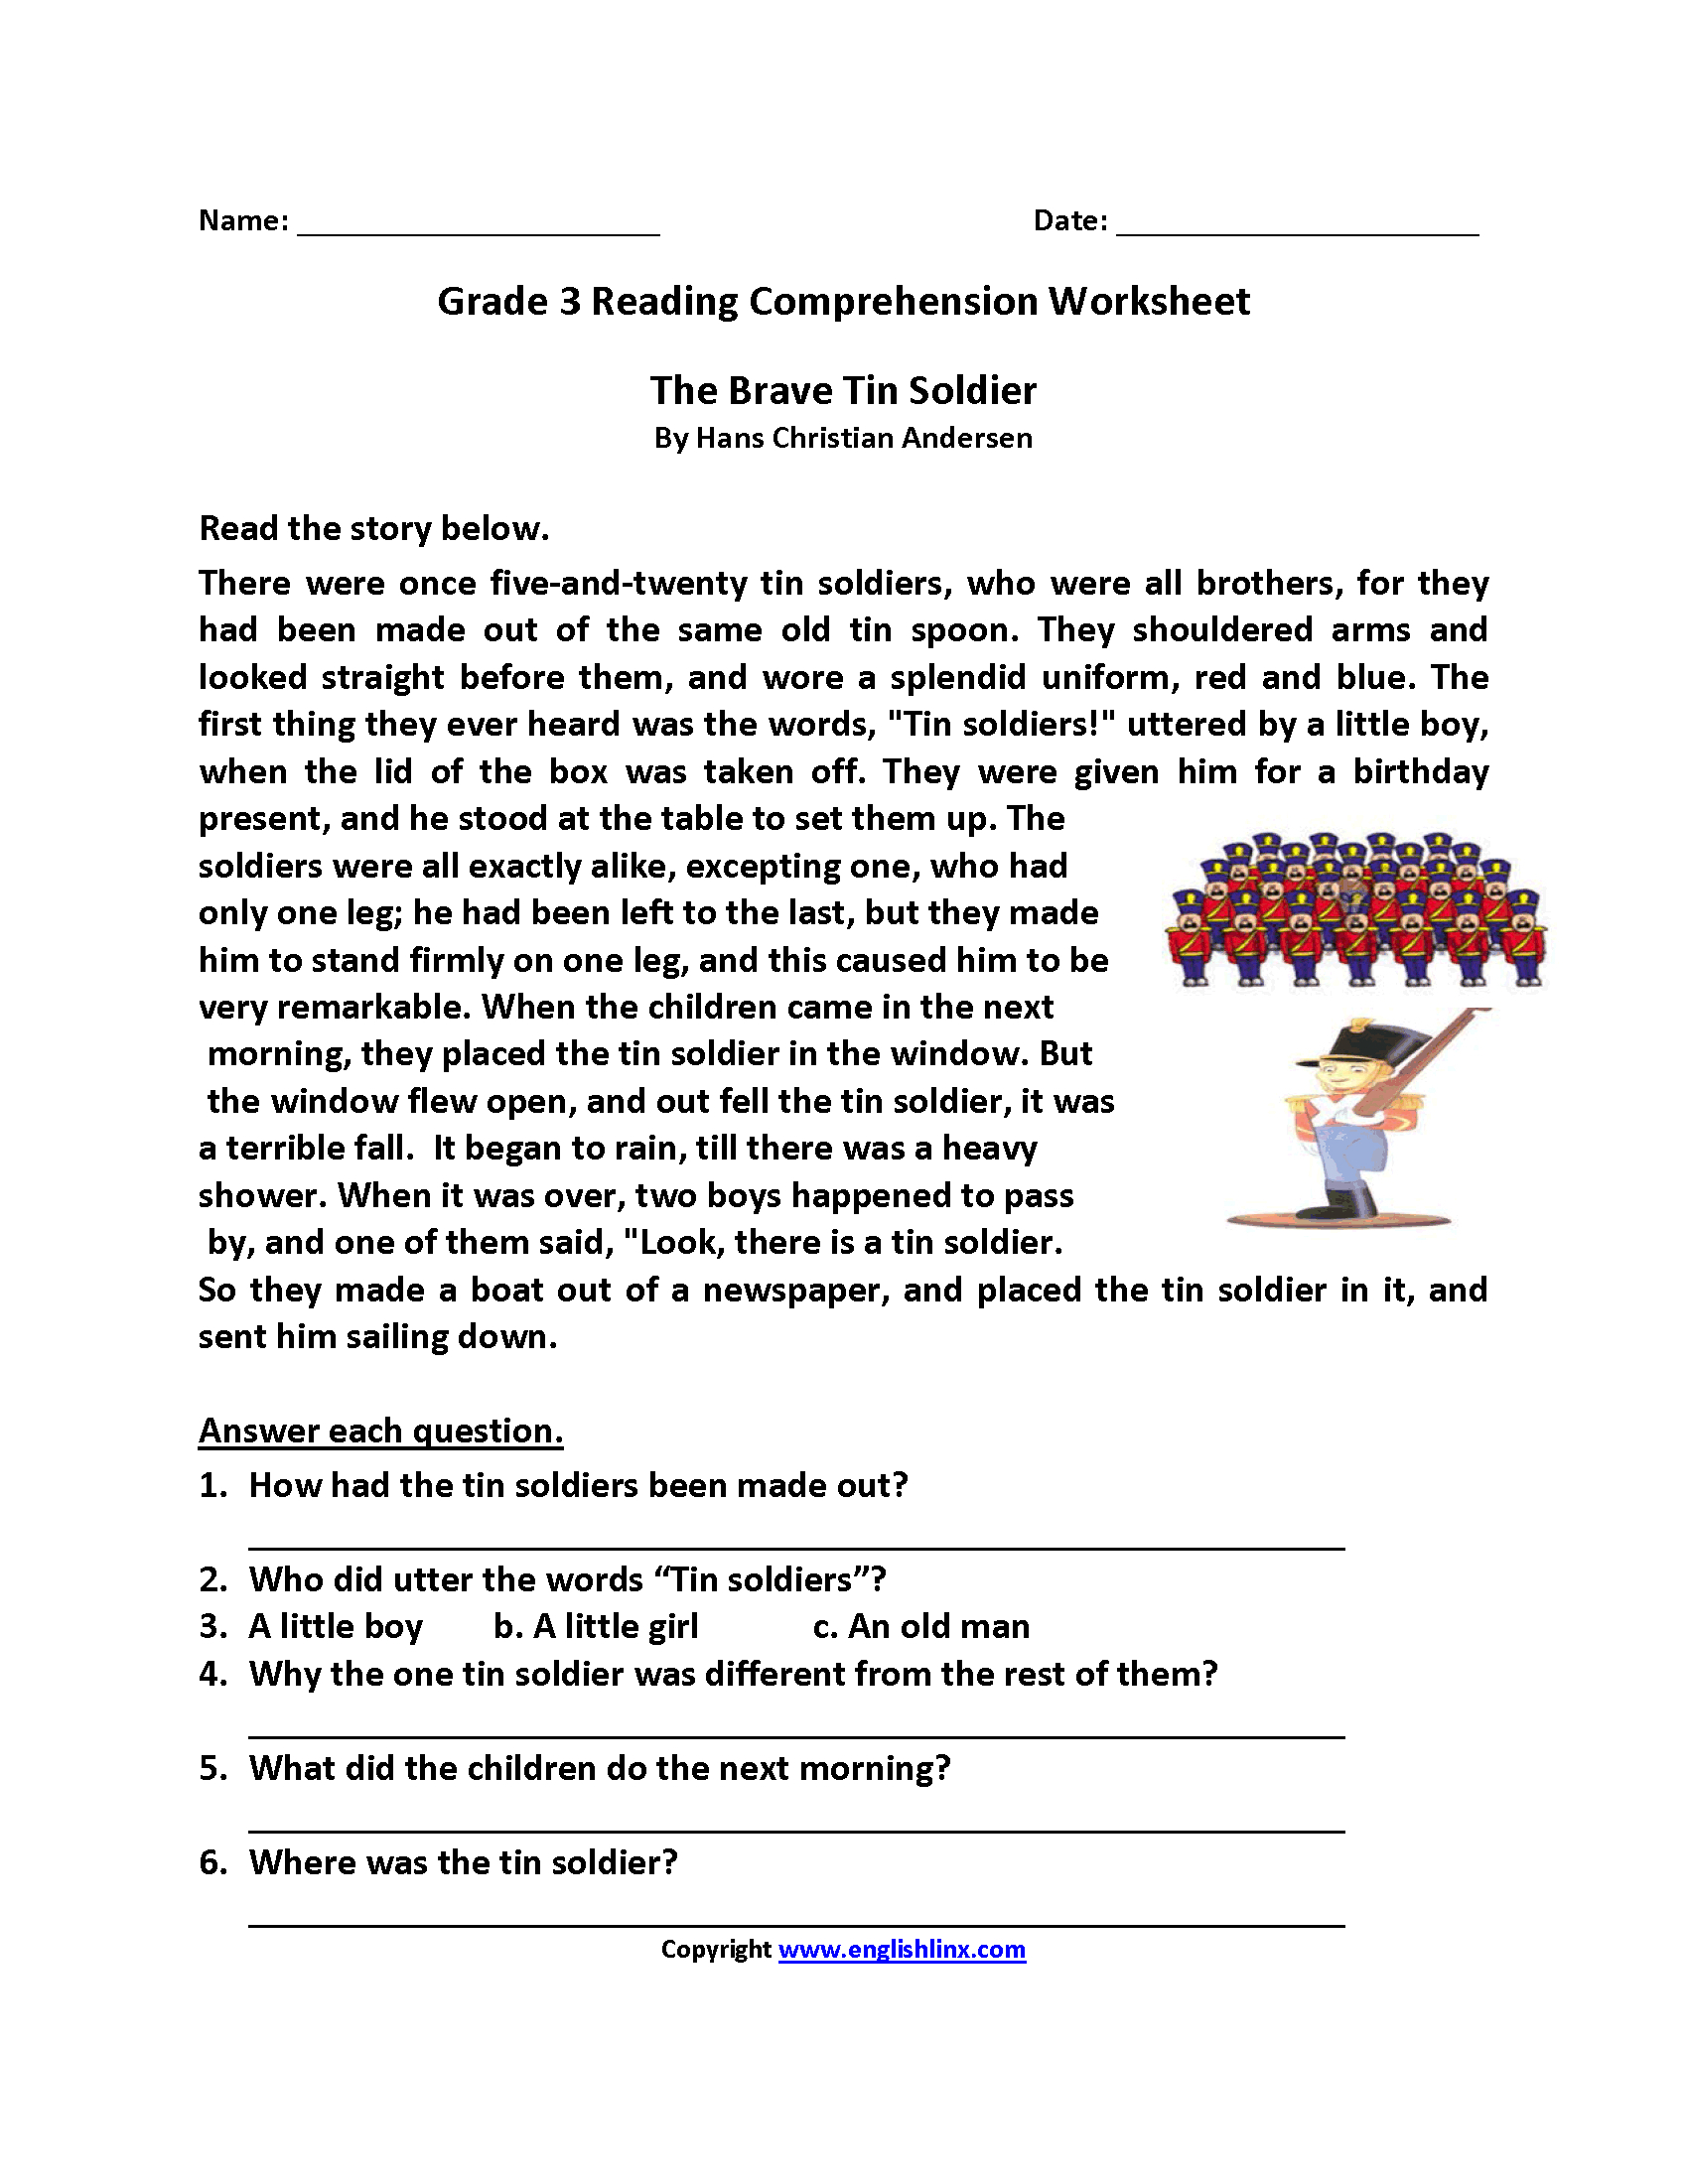 Free Printable Reading Comprehension Worksheets 3Rd Grade For Free | Free Printable Reading Comprehension Worksheets Grade 5